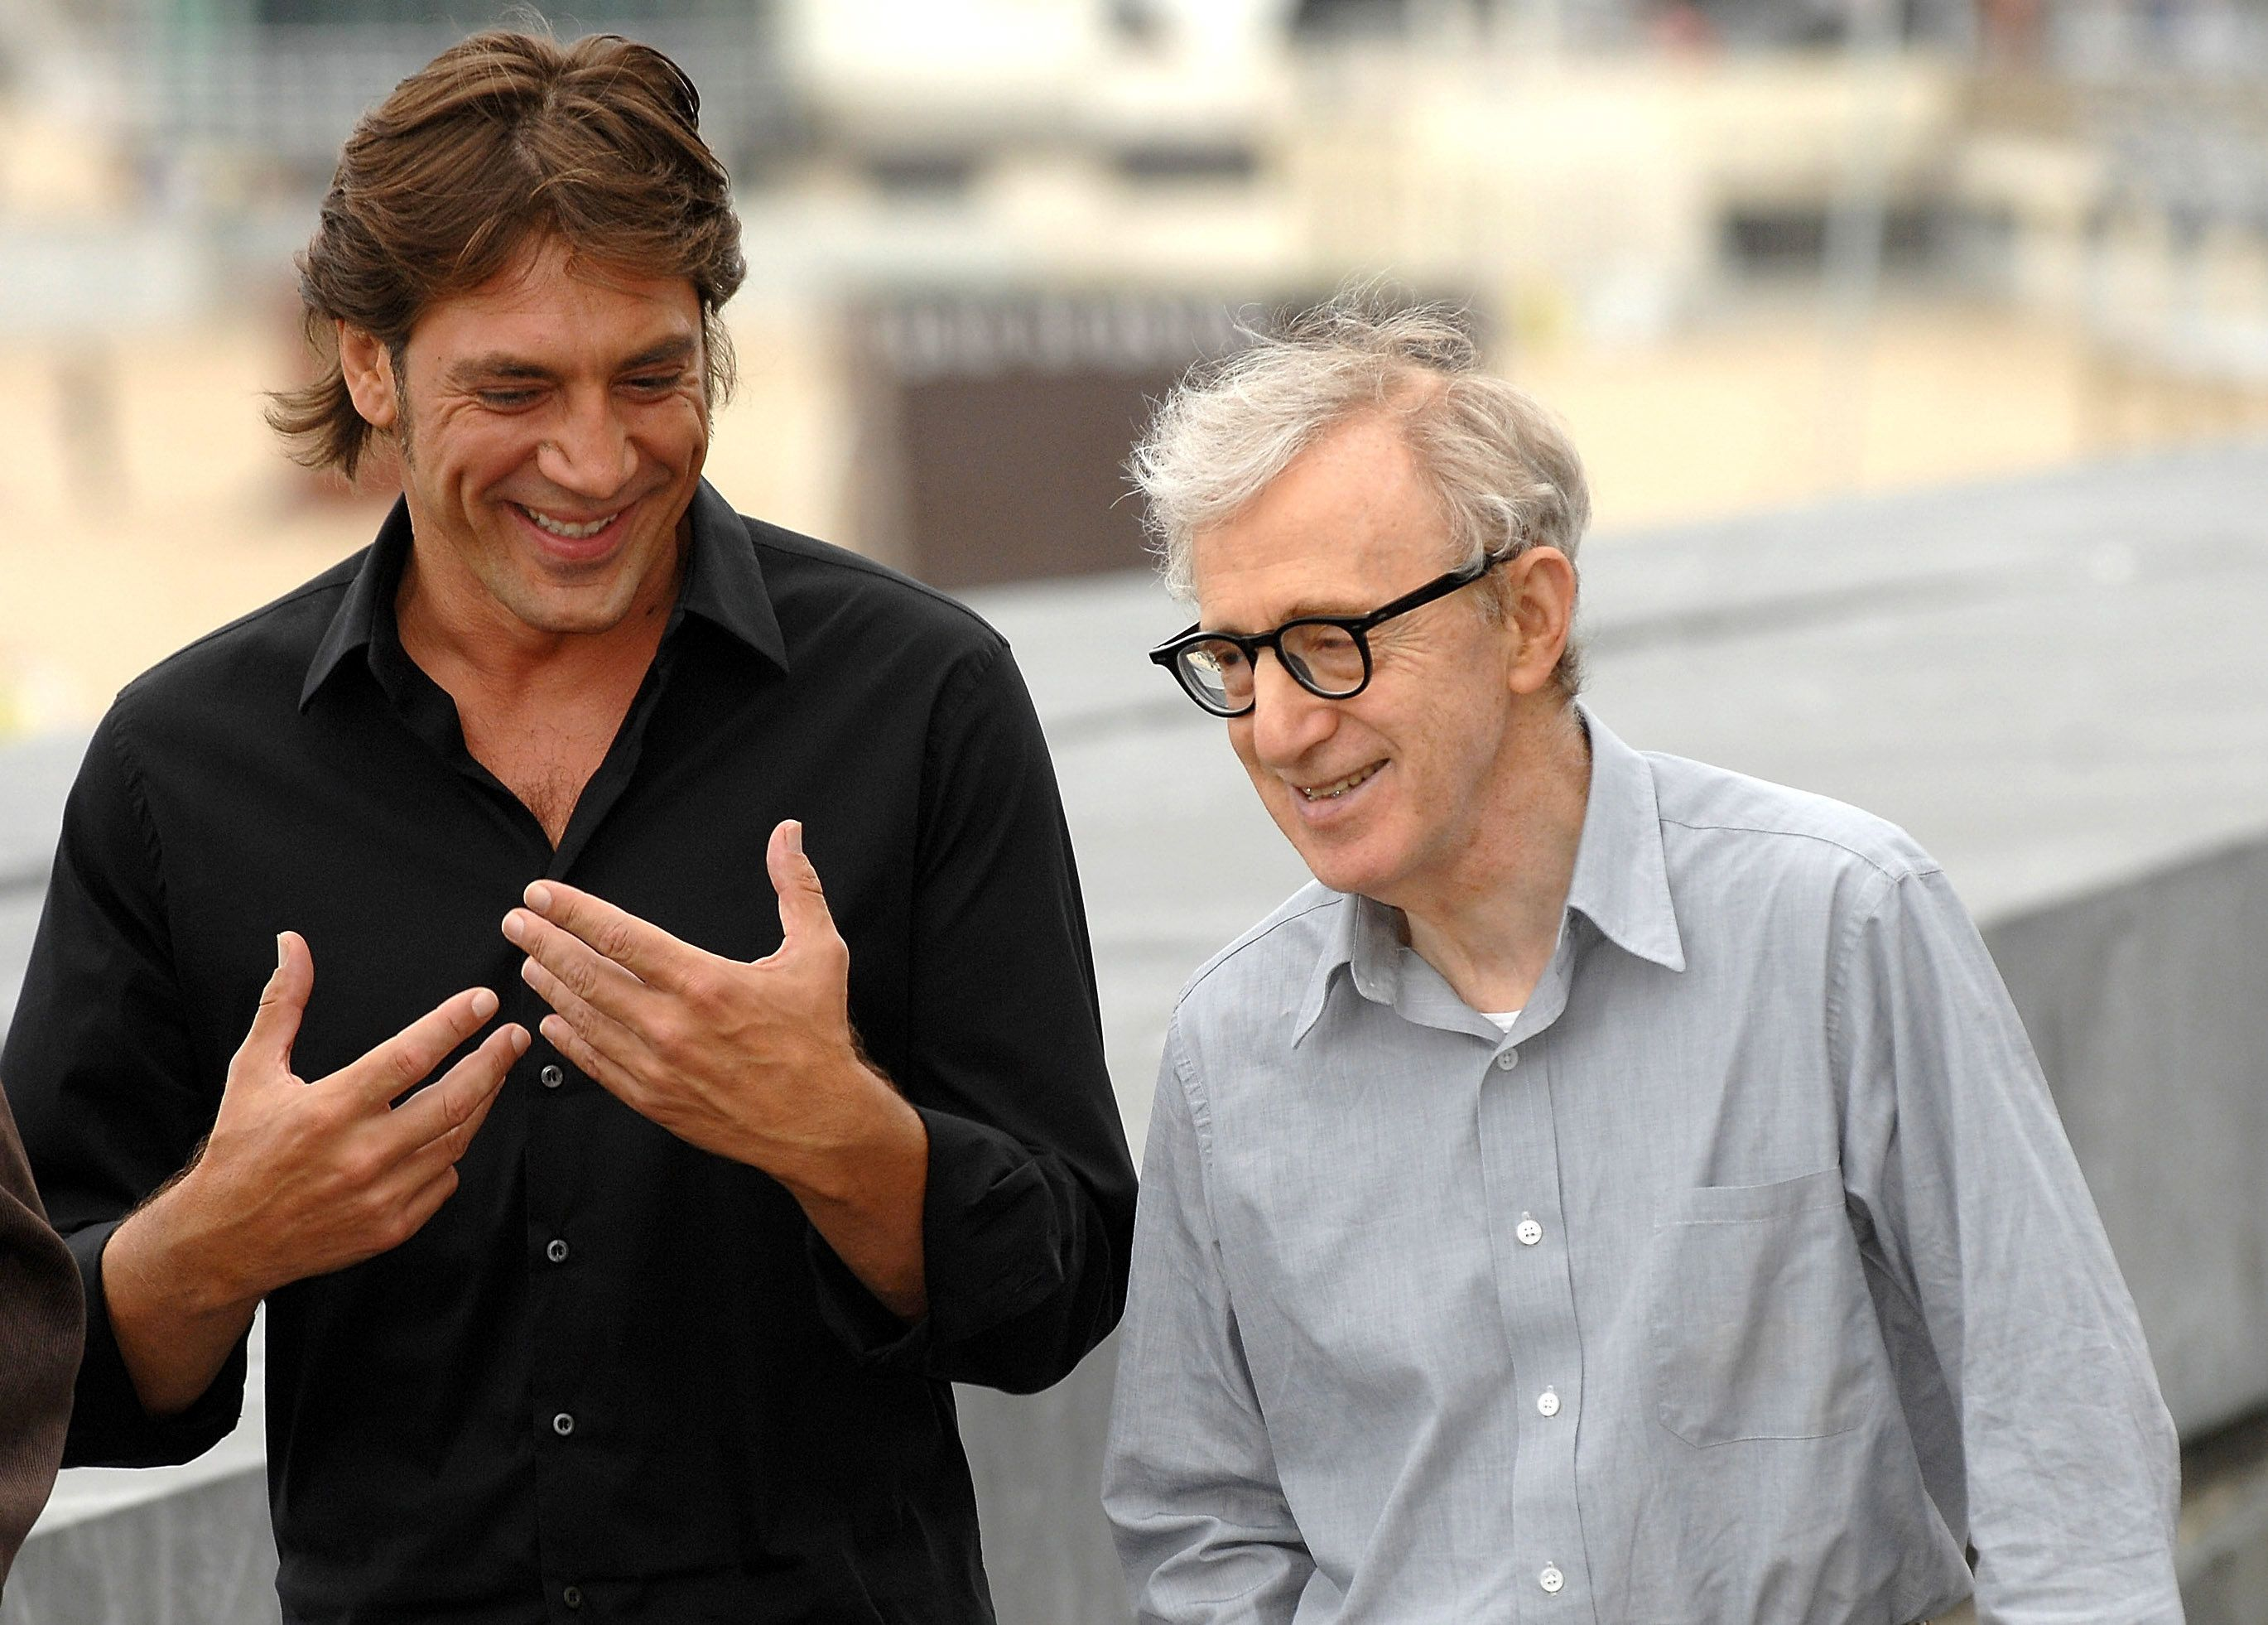 SAN SEBASTIAN, SPAIN - SEPTEMBER 18:  Actor Javier Bardem (L) and director Woody Allen (R) attend the photocall for 'Vicky, Cristina, Barcelona' at The Kursaal Palace, during the 56th San Sebastian Film Festival on September 18, 2008 in San Sebastian, Spain.  (Photo by Fotonoticias/WireImage)